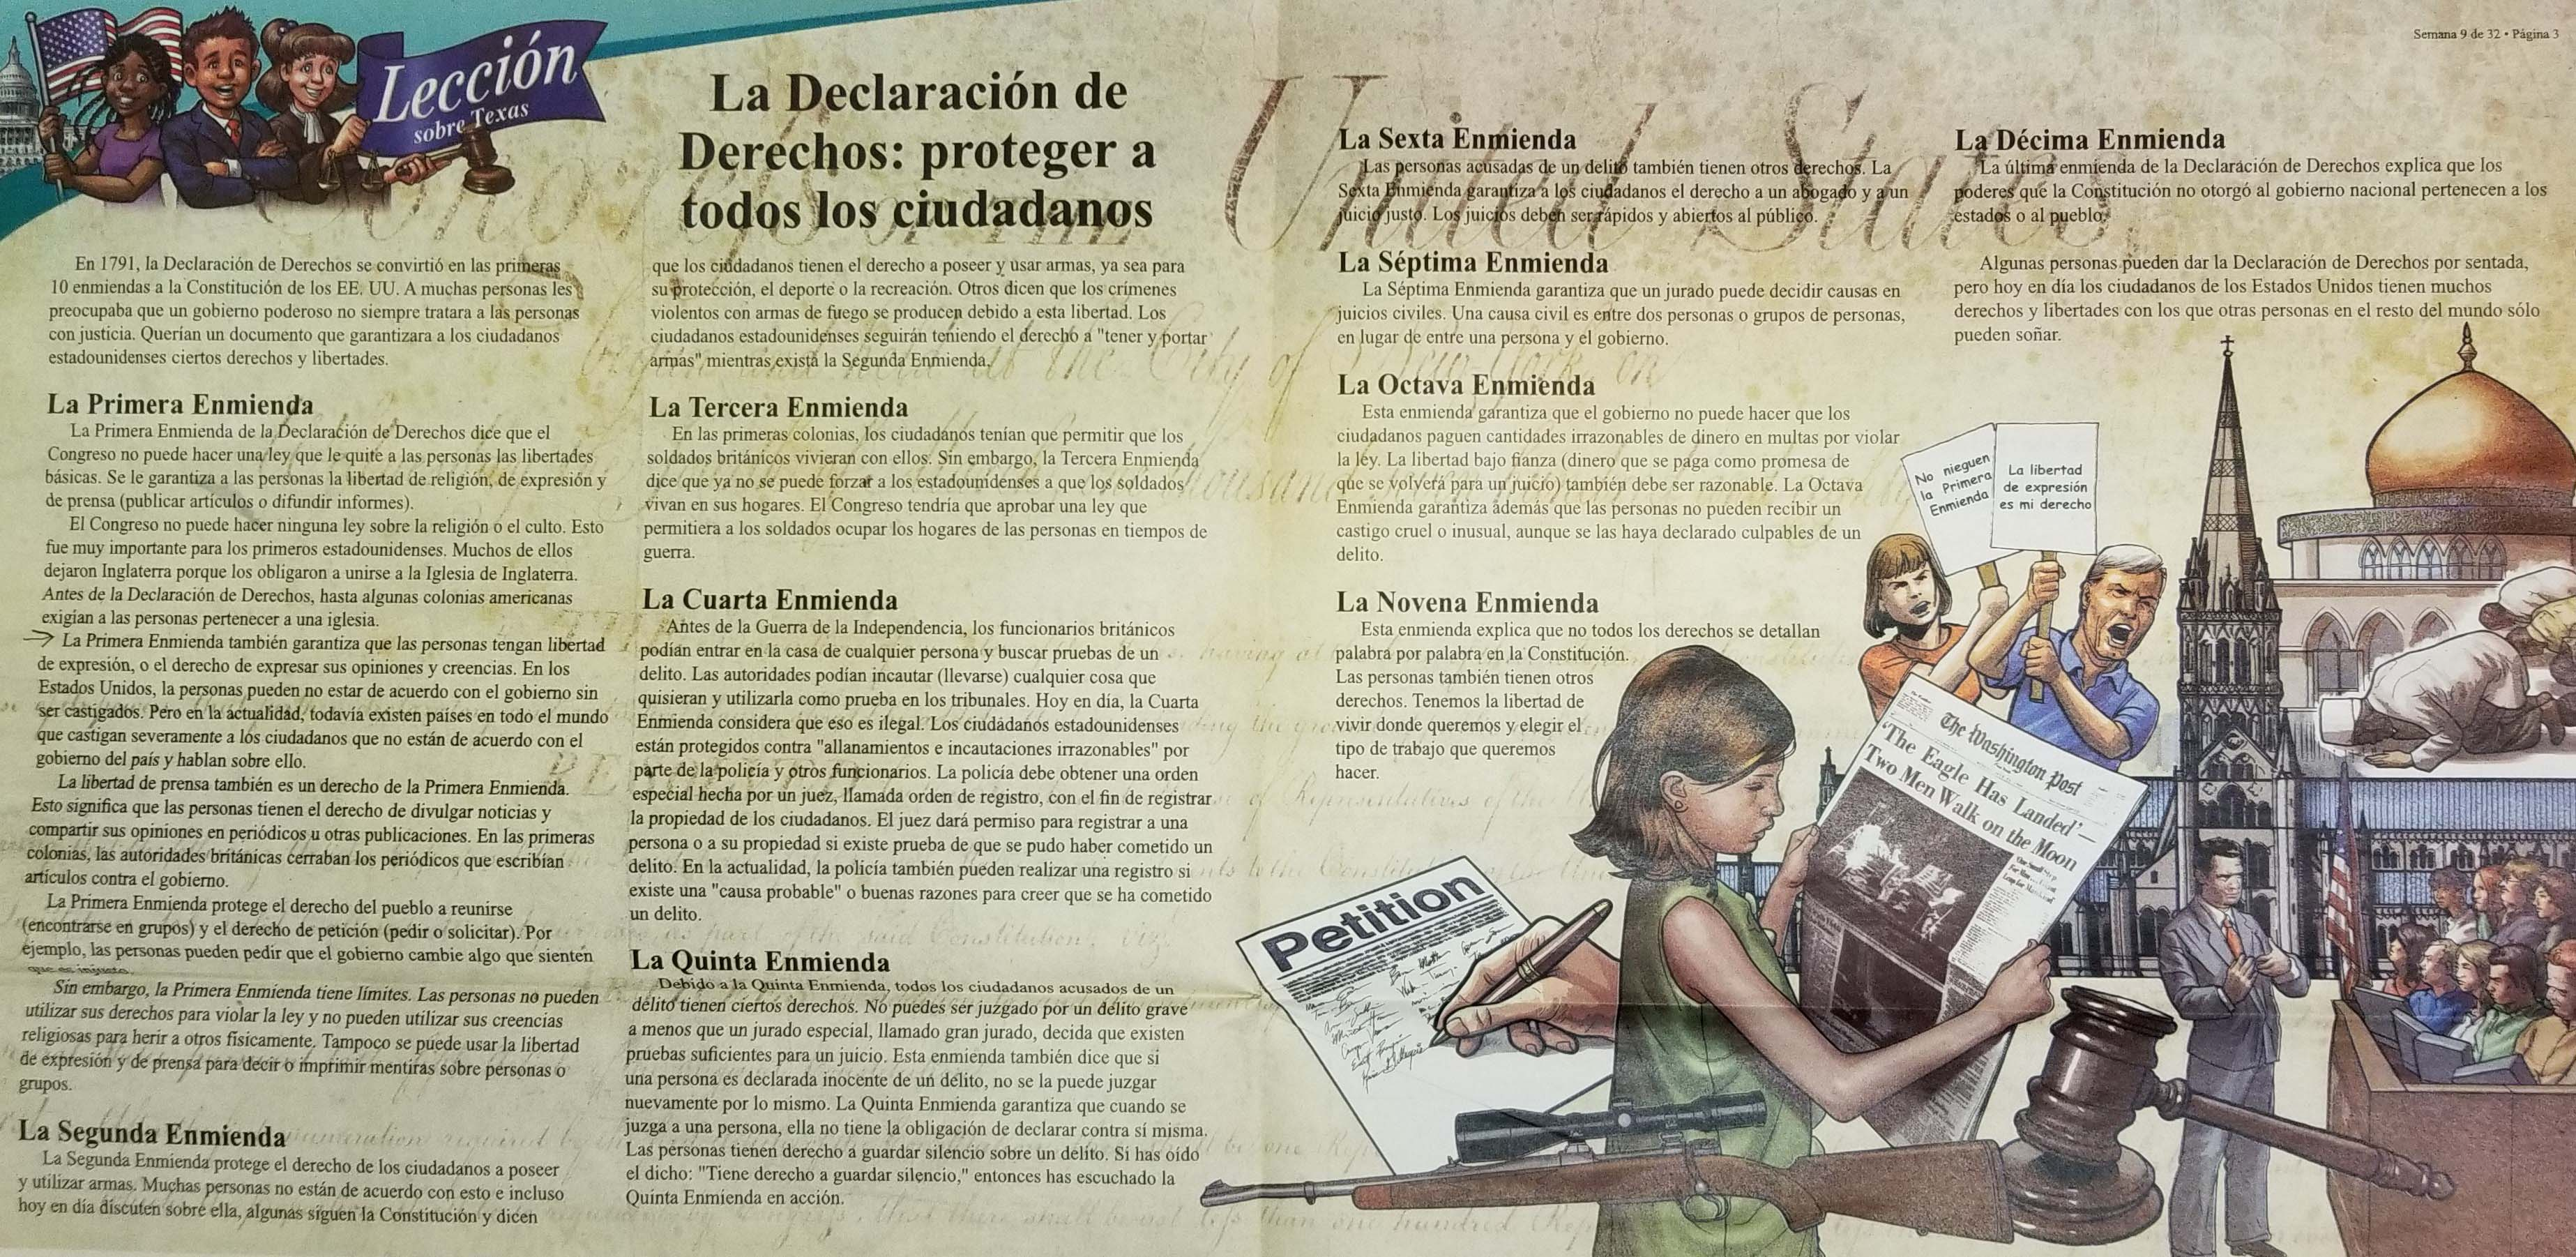 Spanish-language Weekly Reader pages discussing the Bill of Rights